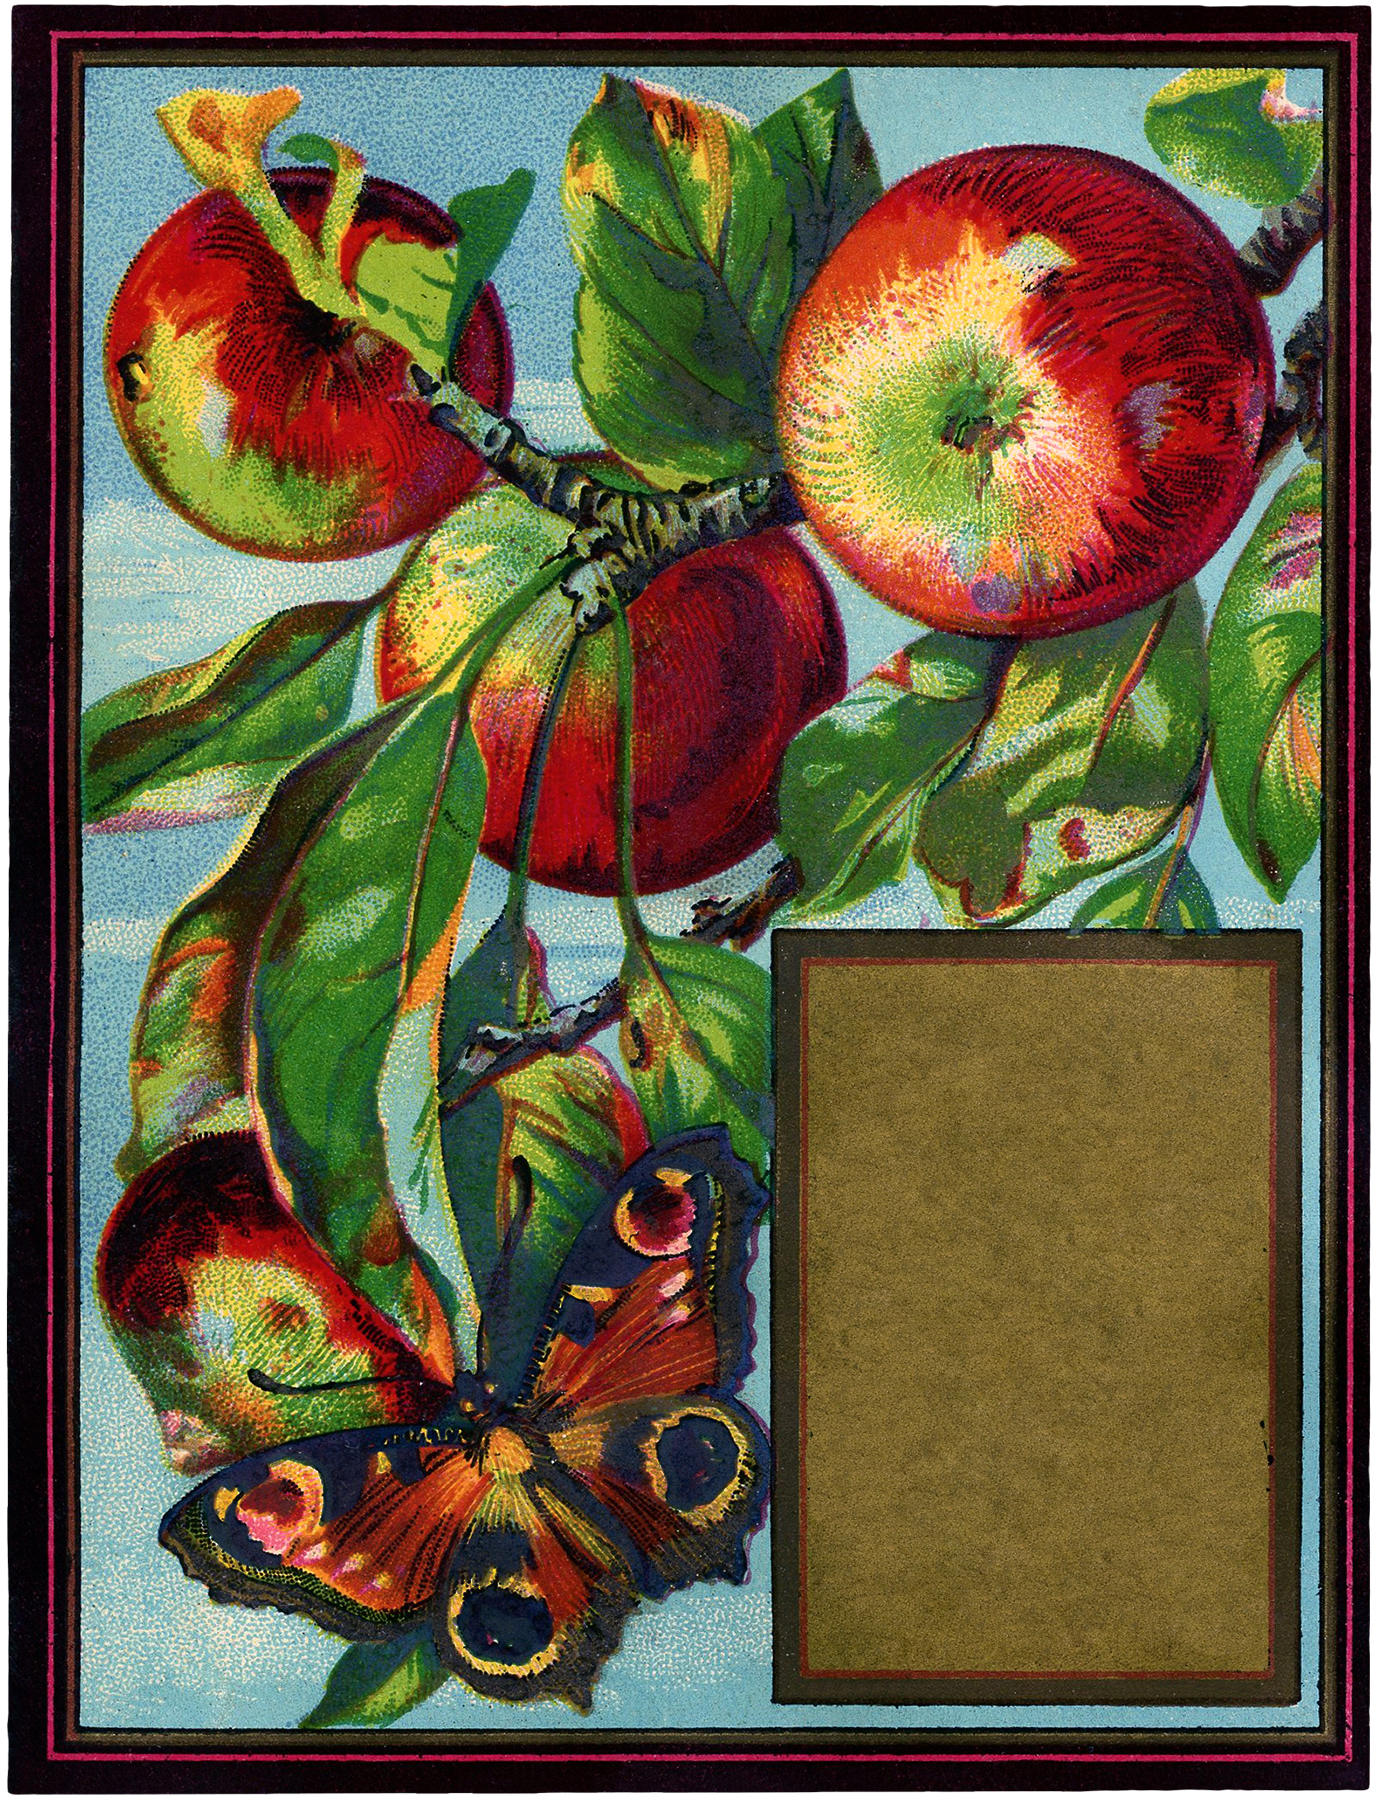 Vintage Apples with Butterfly Image